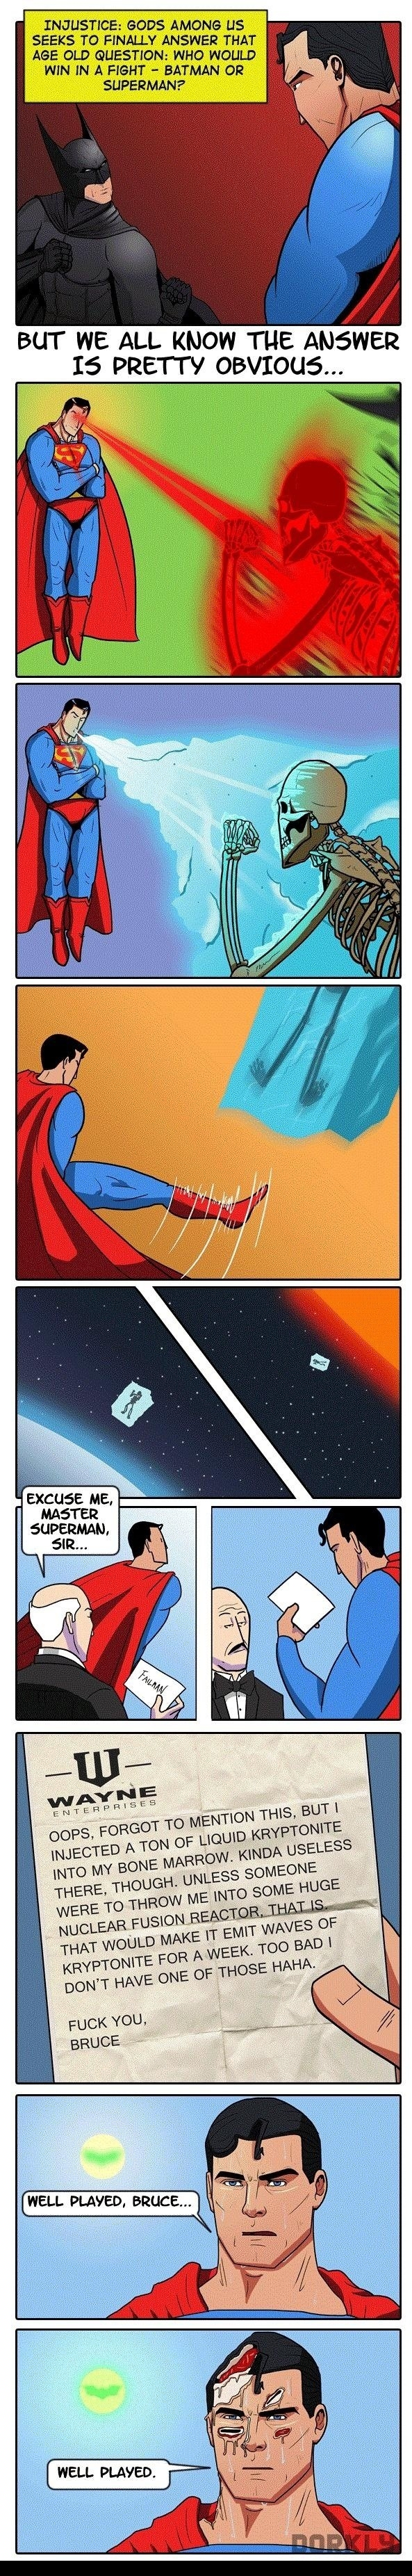 Who would win in a fight – Batman or Superman?